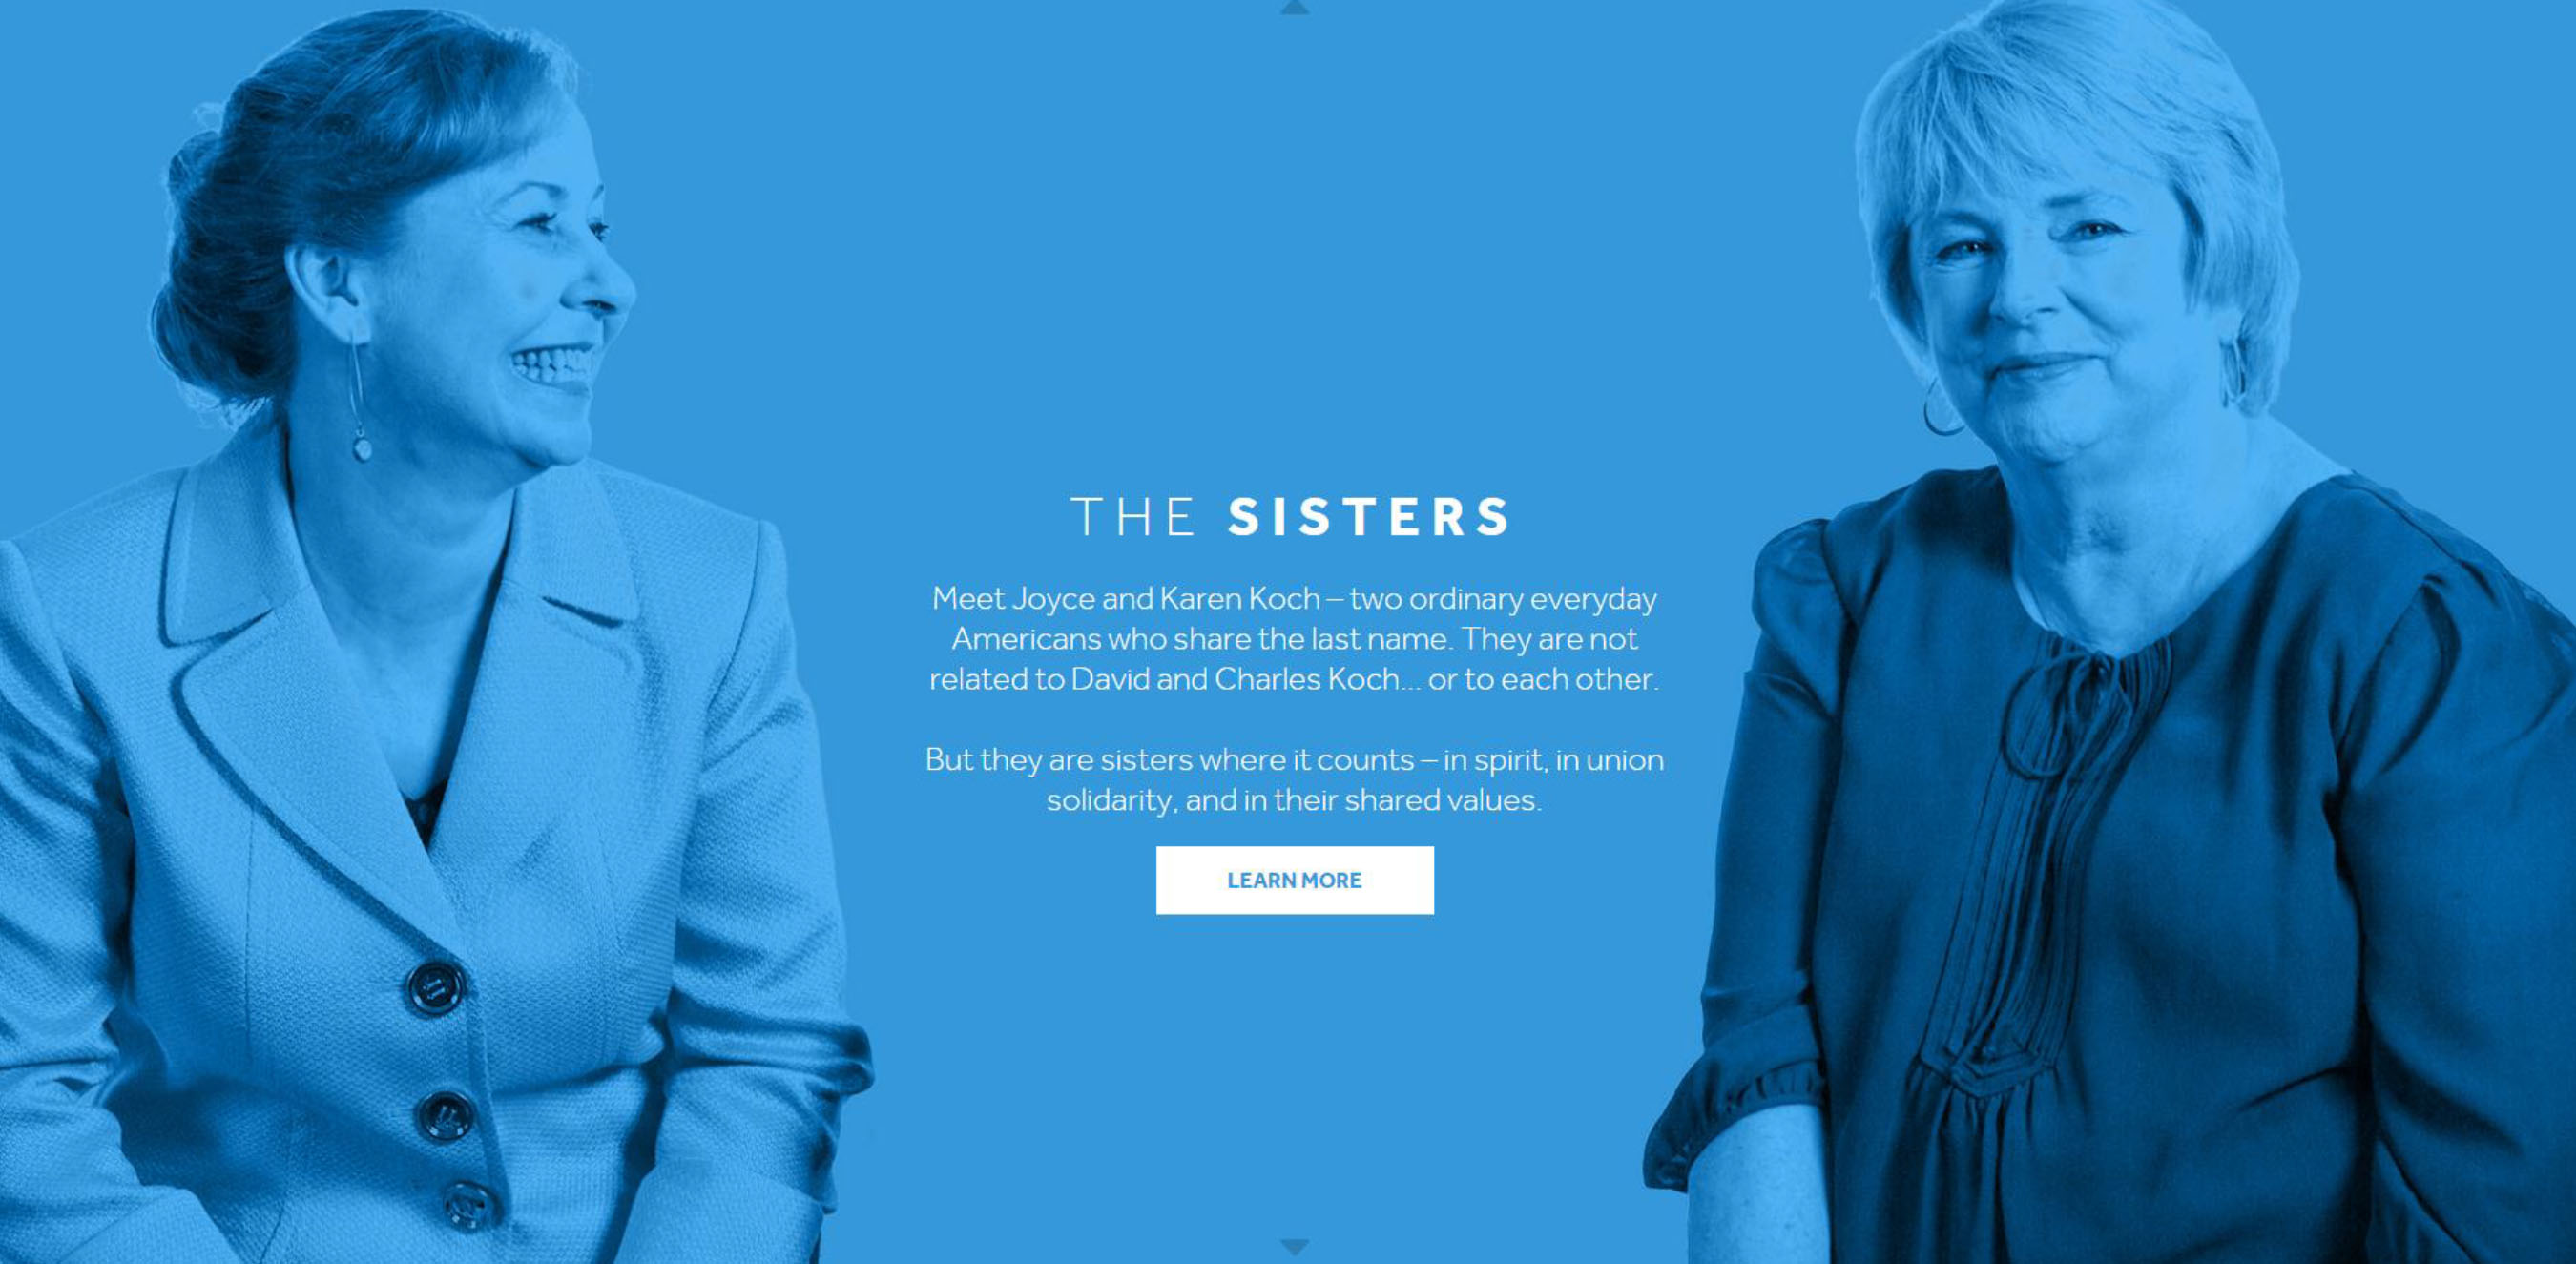 AFL-CIO Introduces The Koch Sisters Campaign